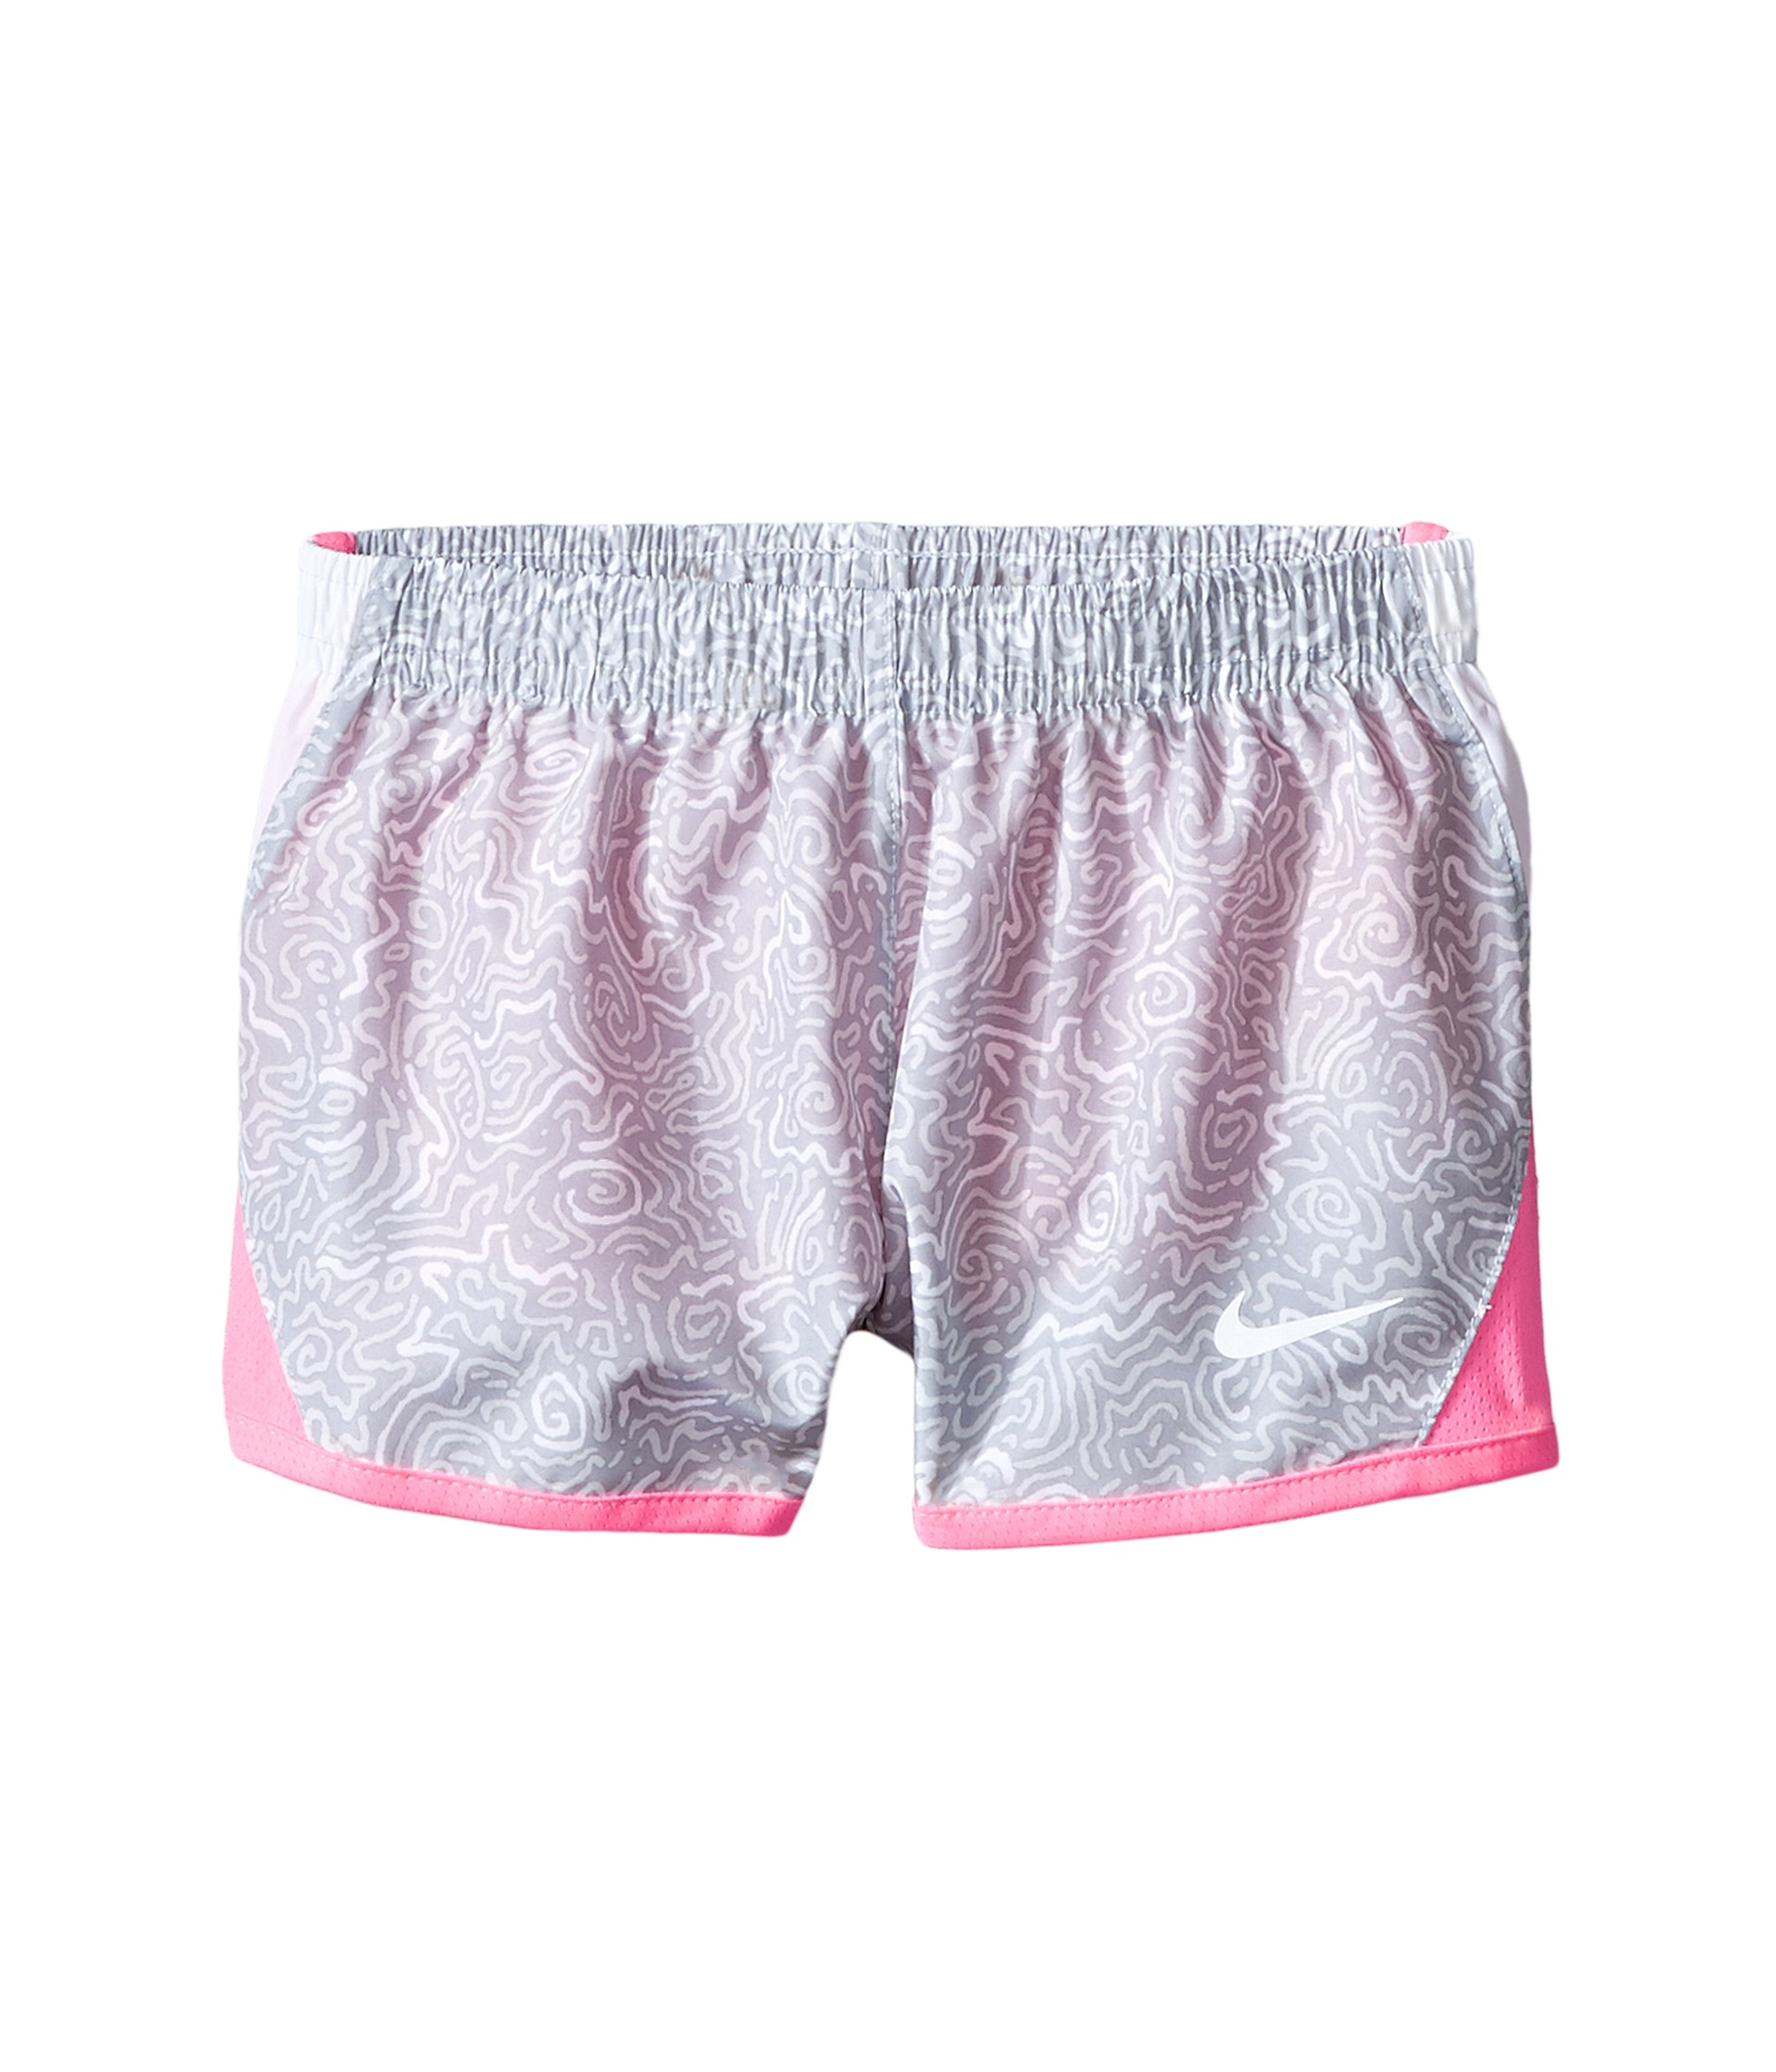 Best prices on Running shorts in Baby & Kids' Shorts online. Visit Bizrate to find the best deals on top brands. Read reviews on Babies & Kids merchants and buy with confidence.